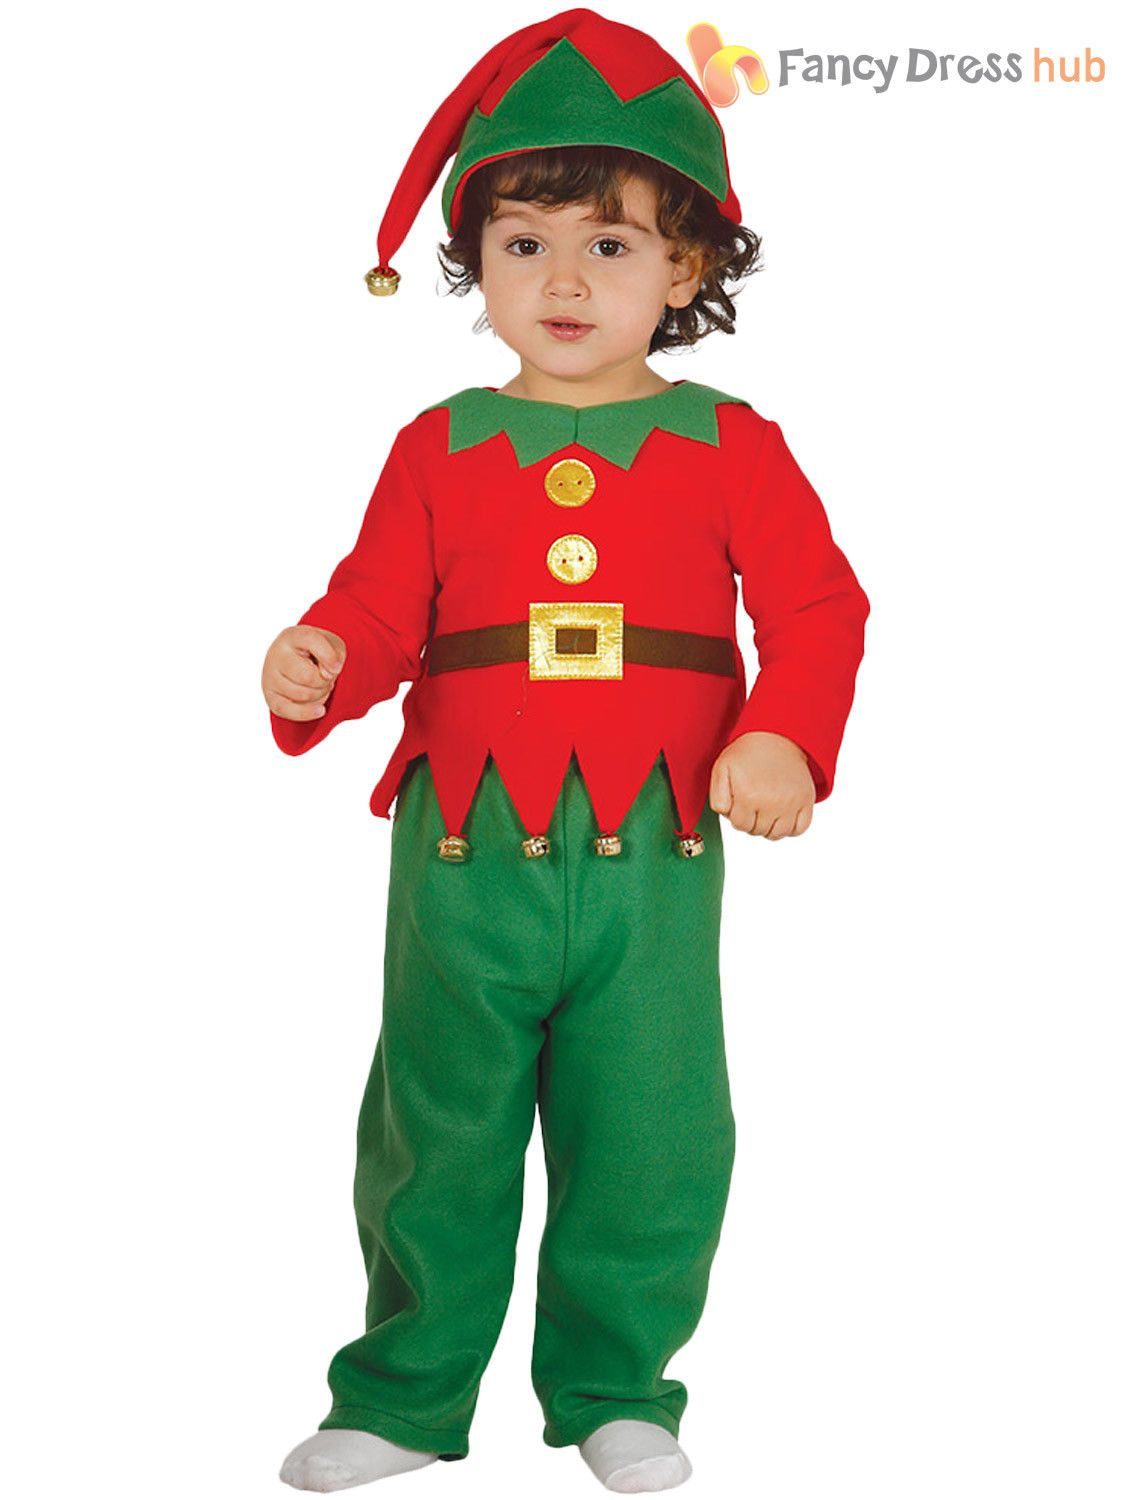 ce0aab3f18dcd Baby Toddler Elf Costume Boys Girls Christmas Fancy Dress Santas Helper  Outfit